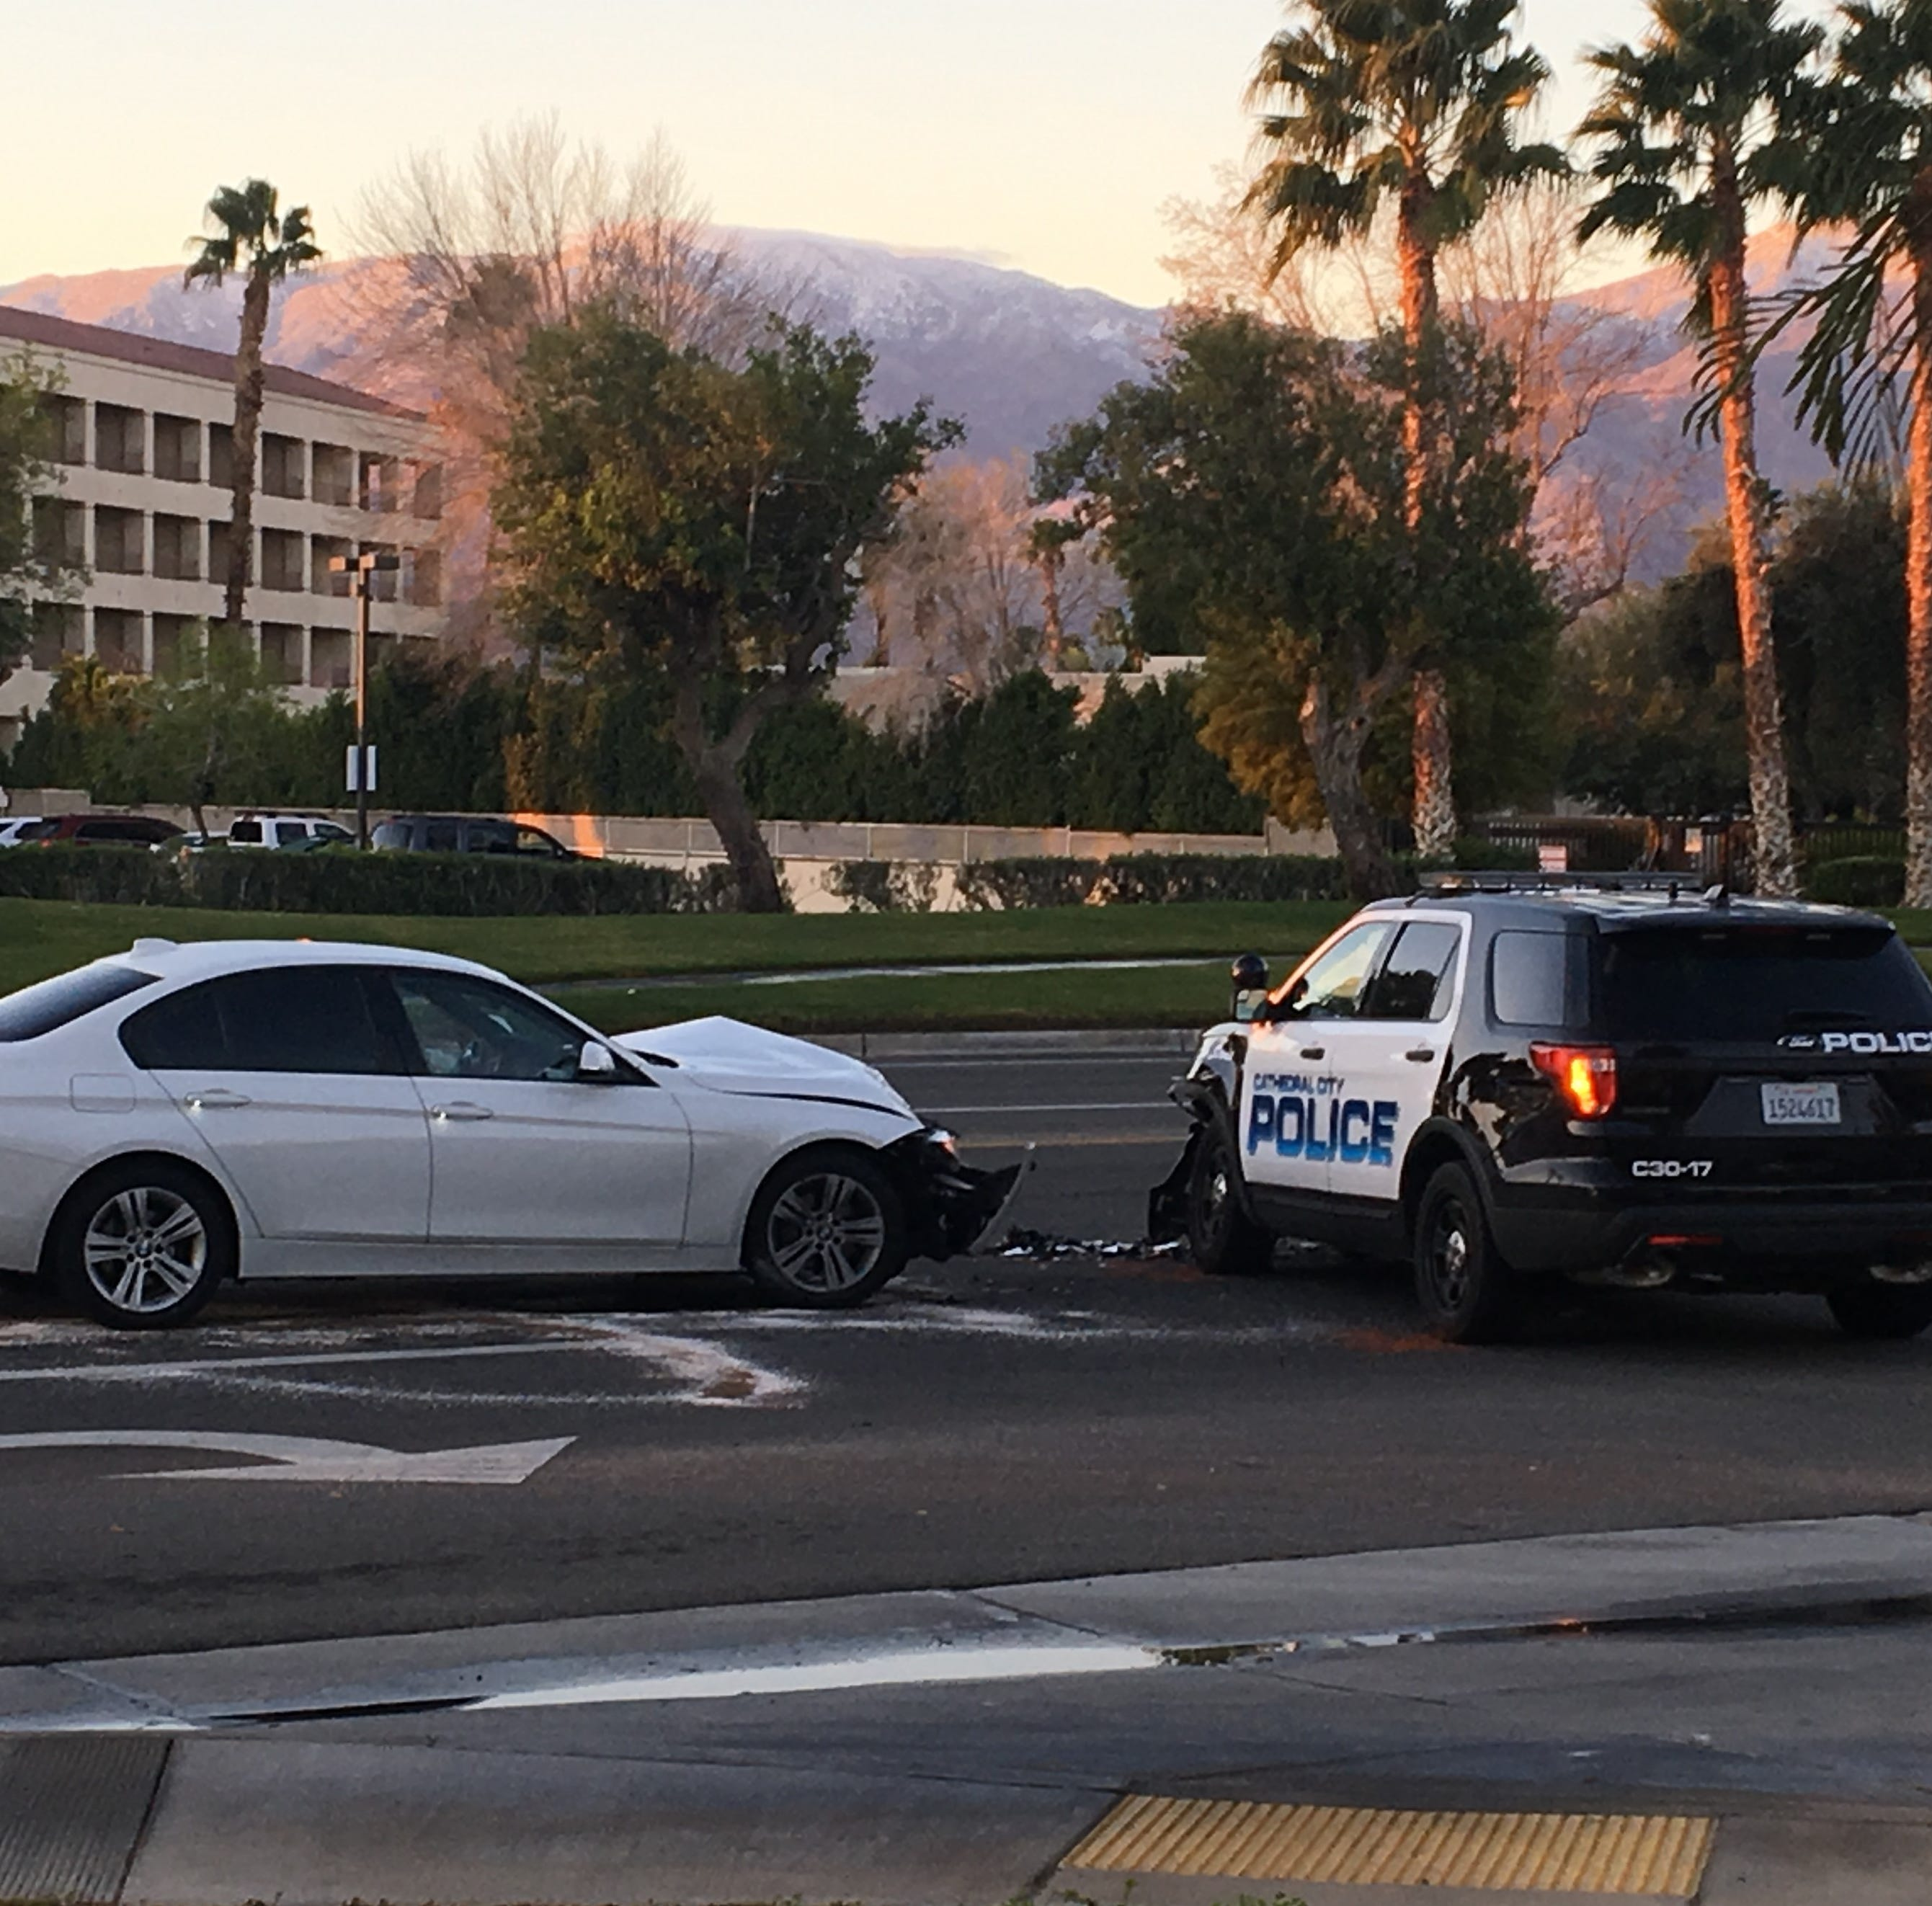 Cathedral City police officer involved in collision on Vista Chino